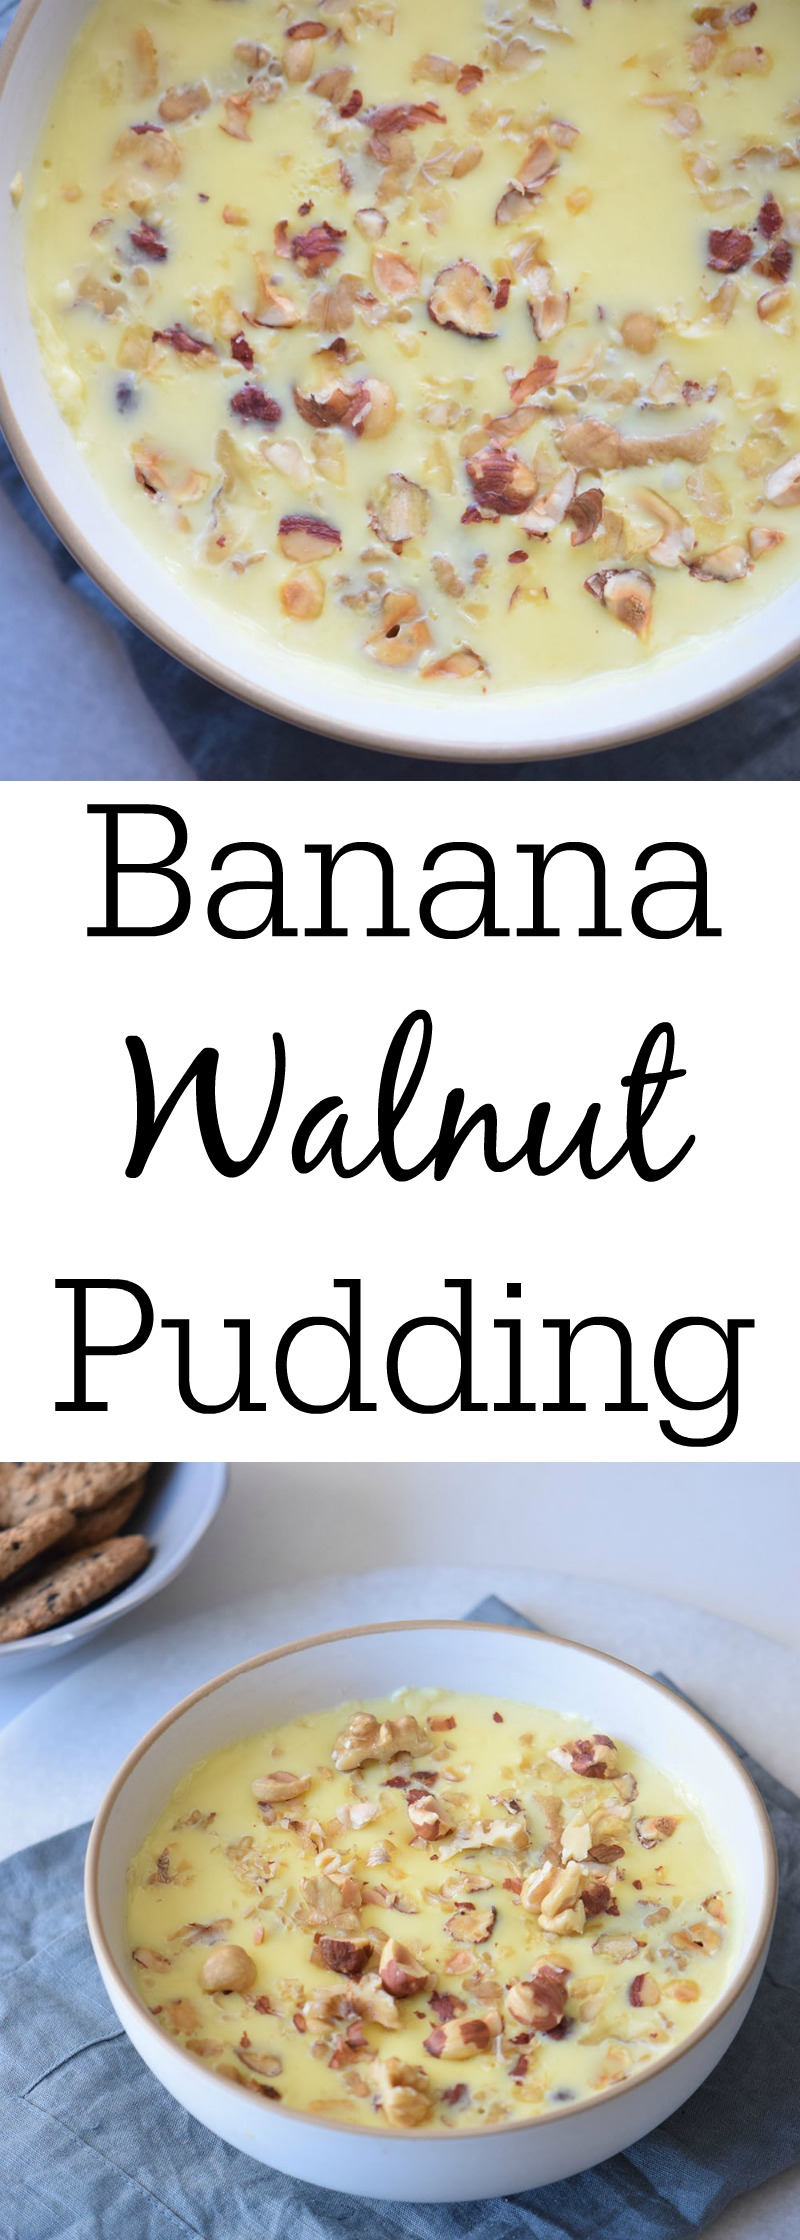 Banana Walnut Pudding